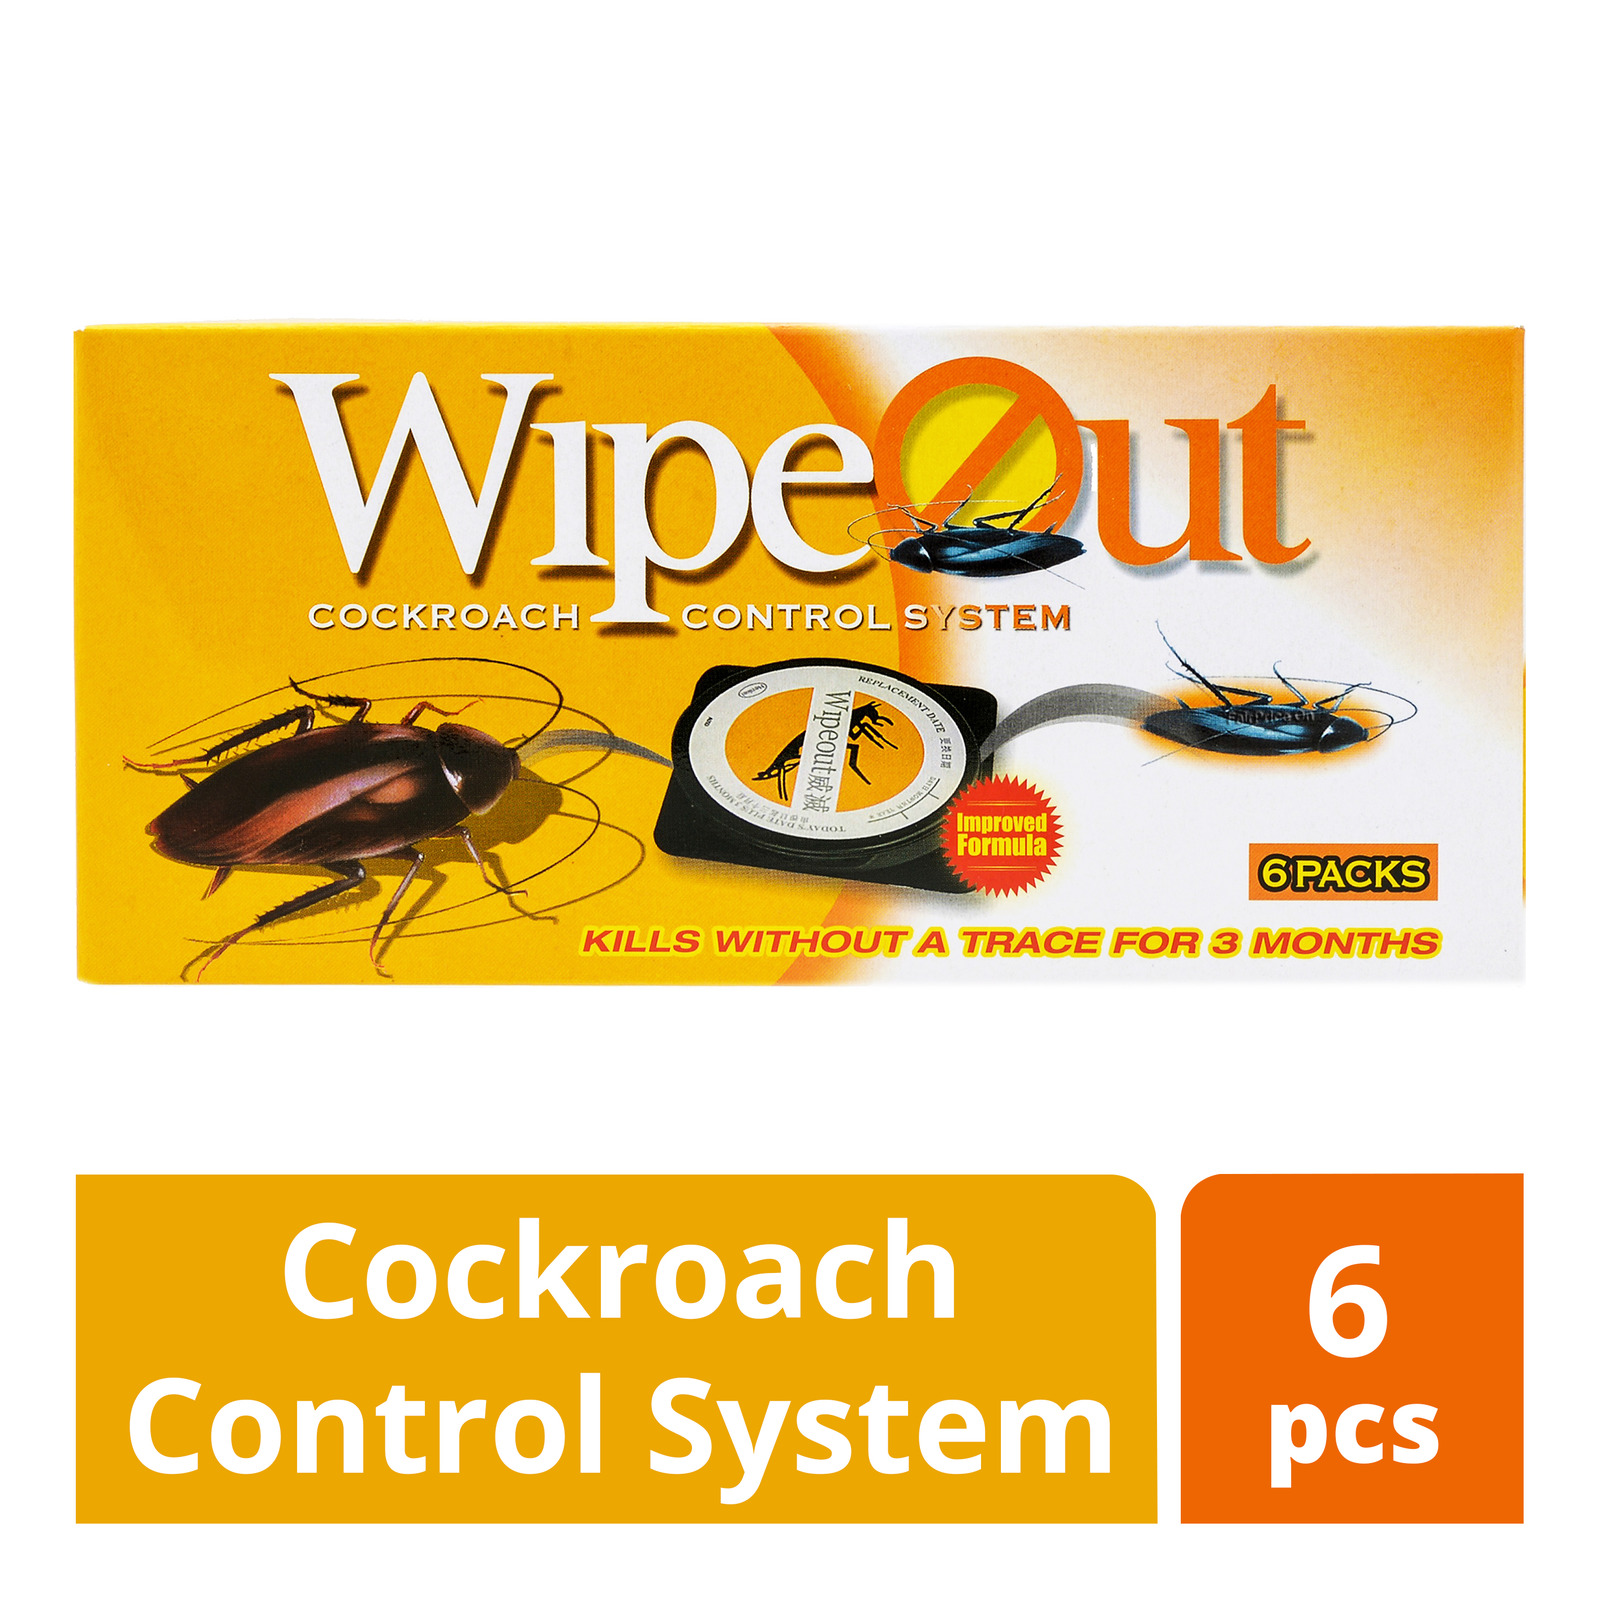 Wipeout Cockroach Control System